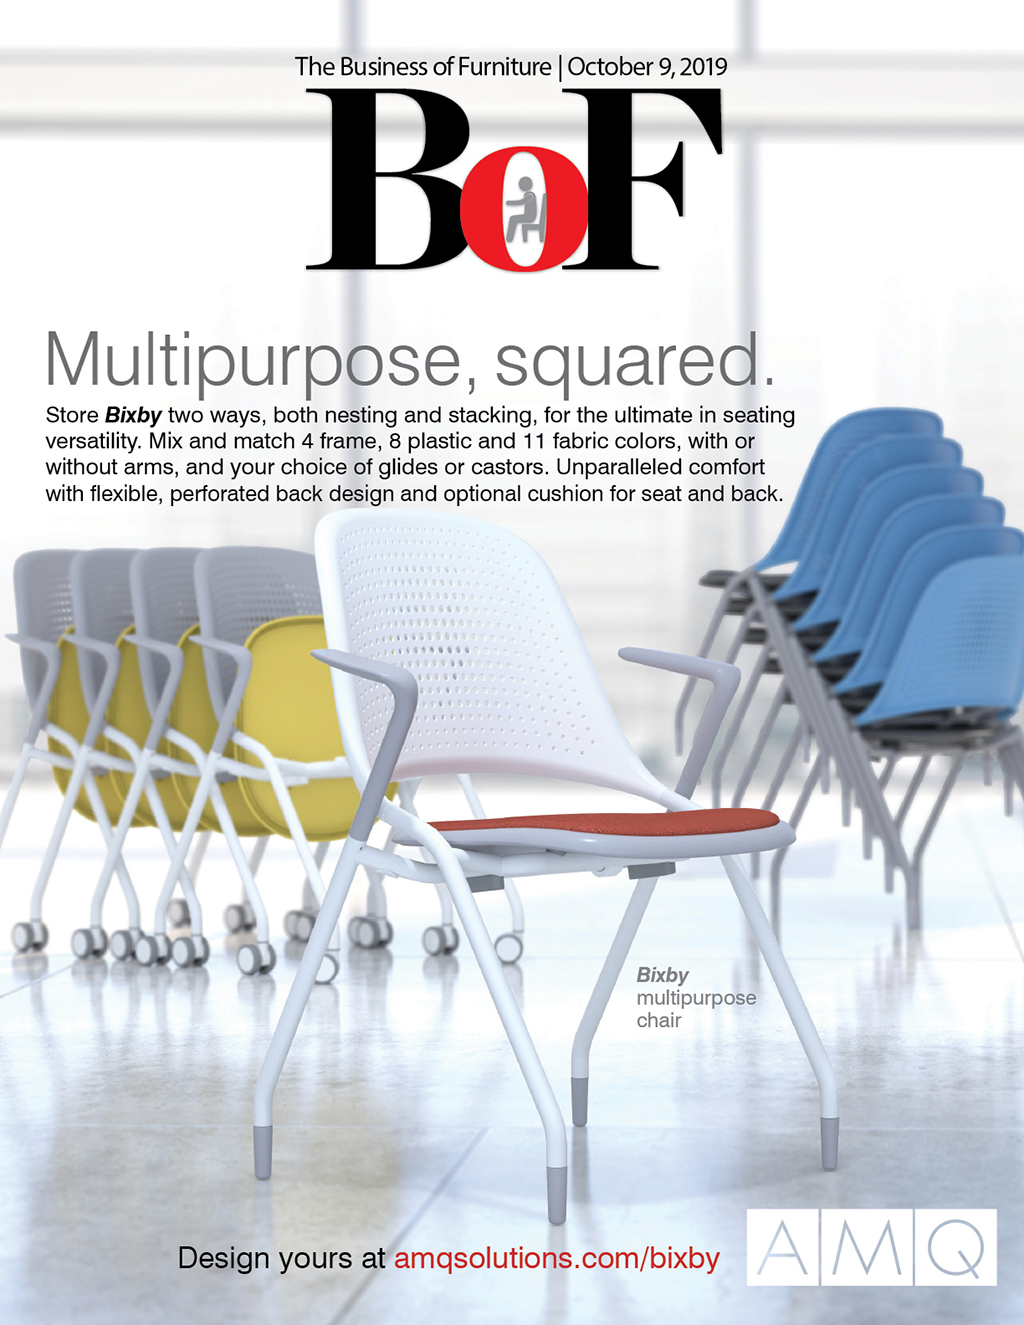 Tremendous Bellow Press Latest Editions Of Business Of Furniture And Alphanode Cool Chair Designs And Ideas Alphanodeonline